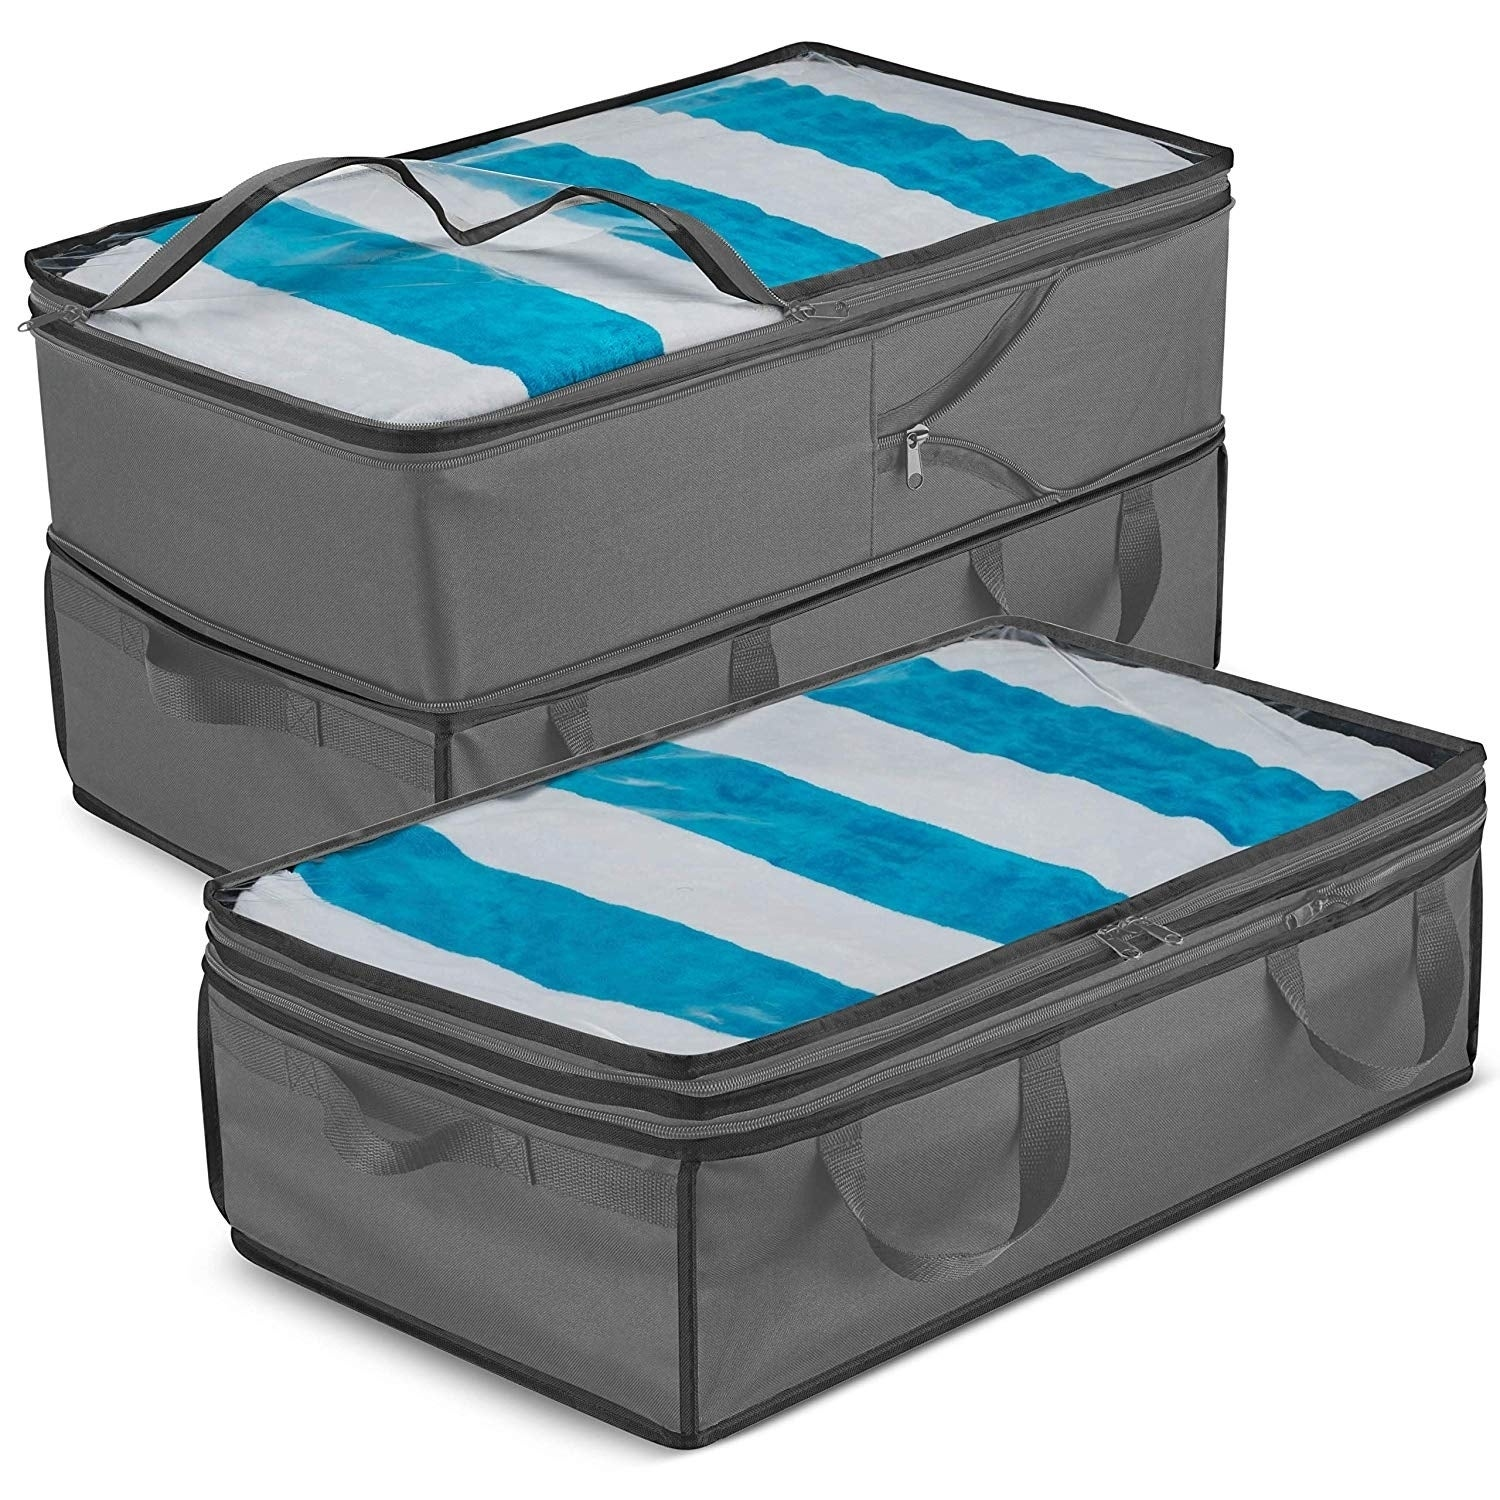 Large Capacity Clothes Storage Bags